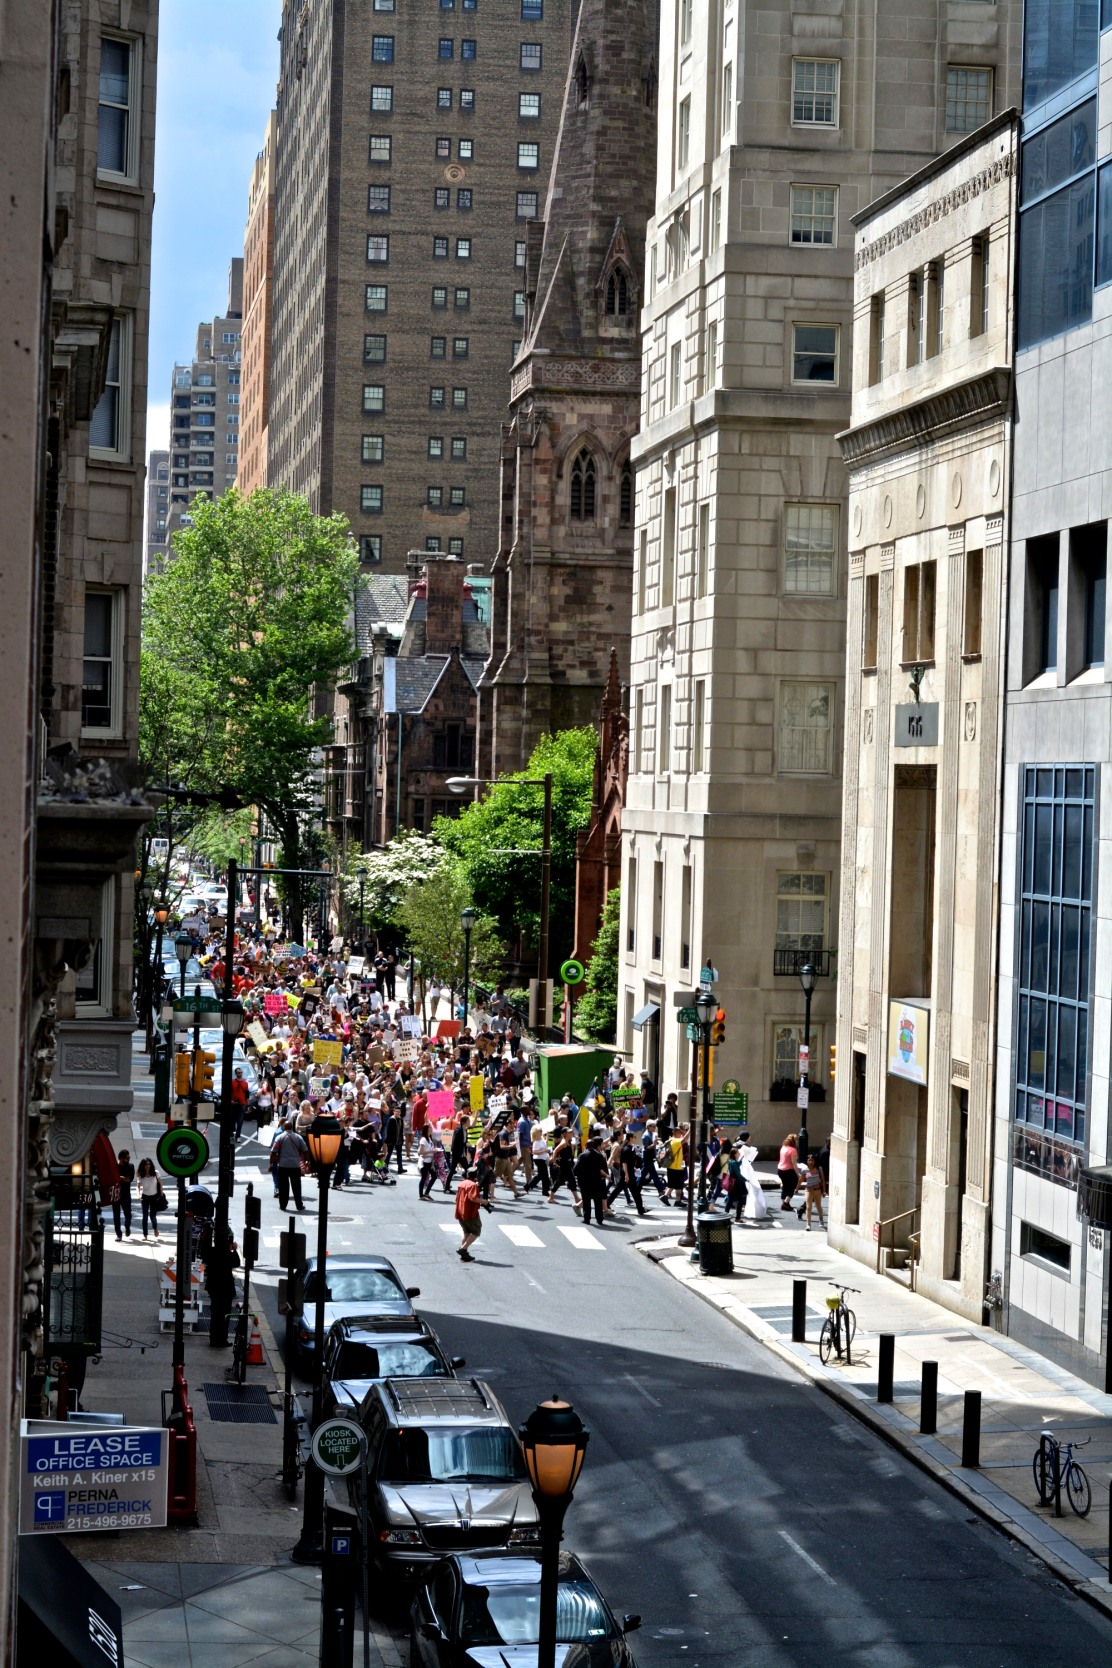 Protesters marching through the streets of Center City. Photo by Joshua Albert